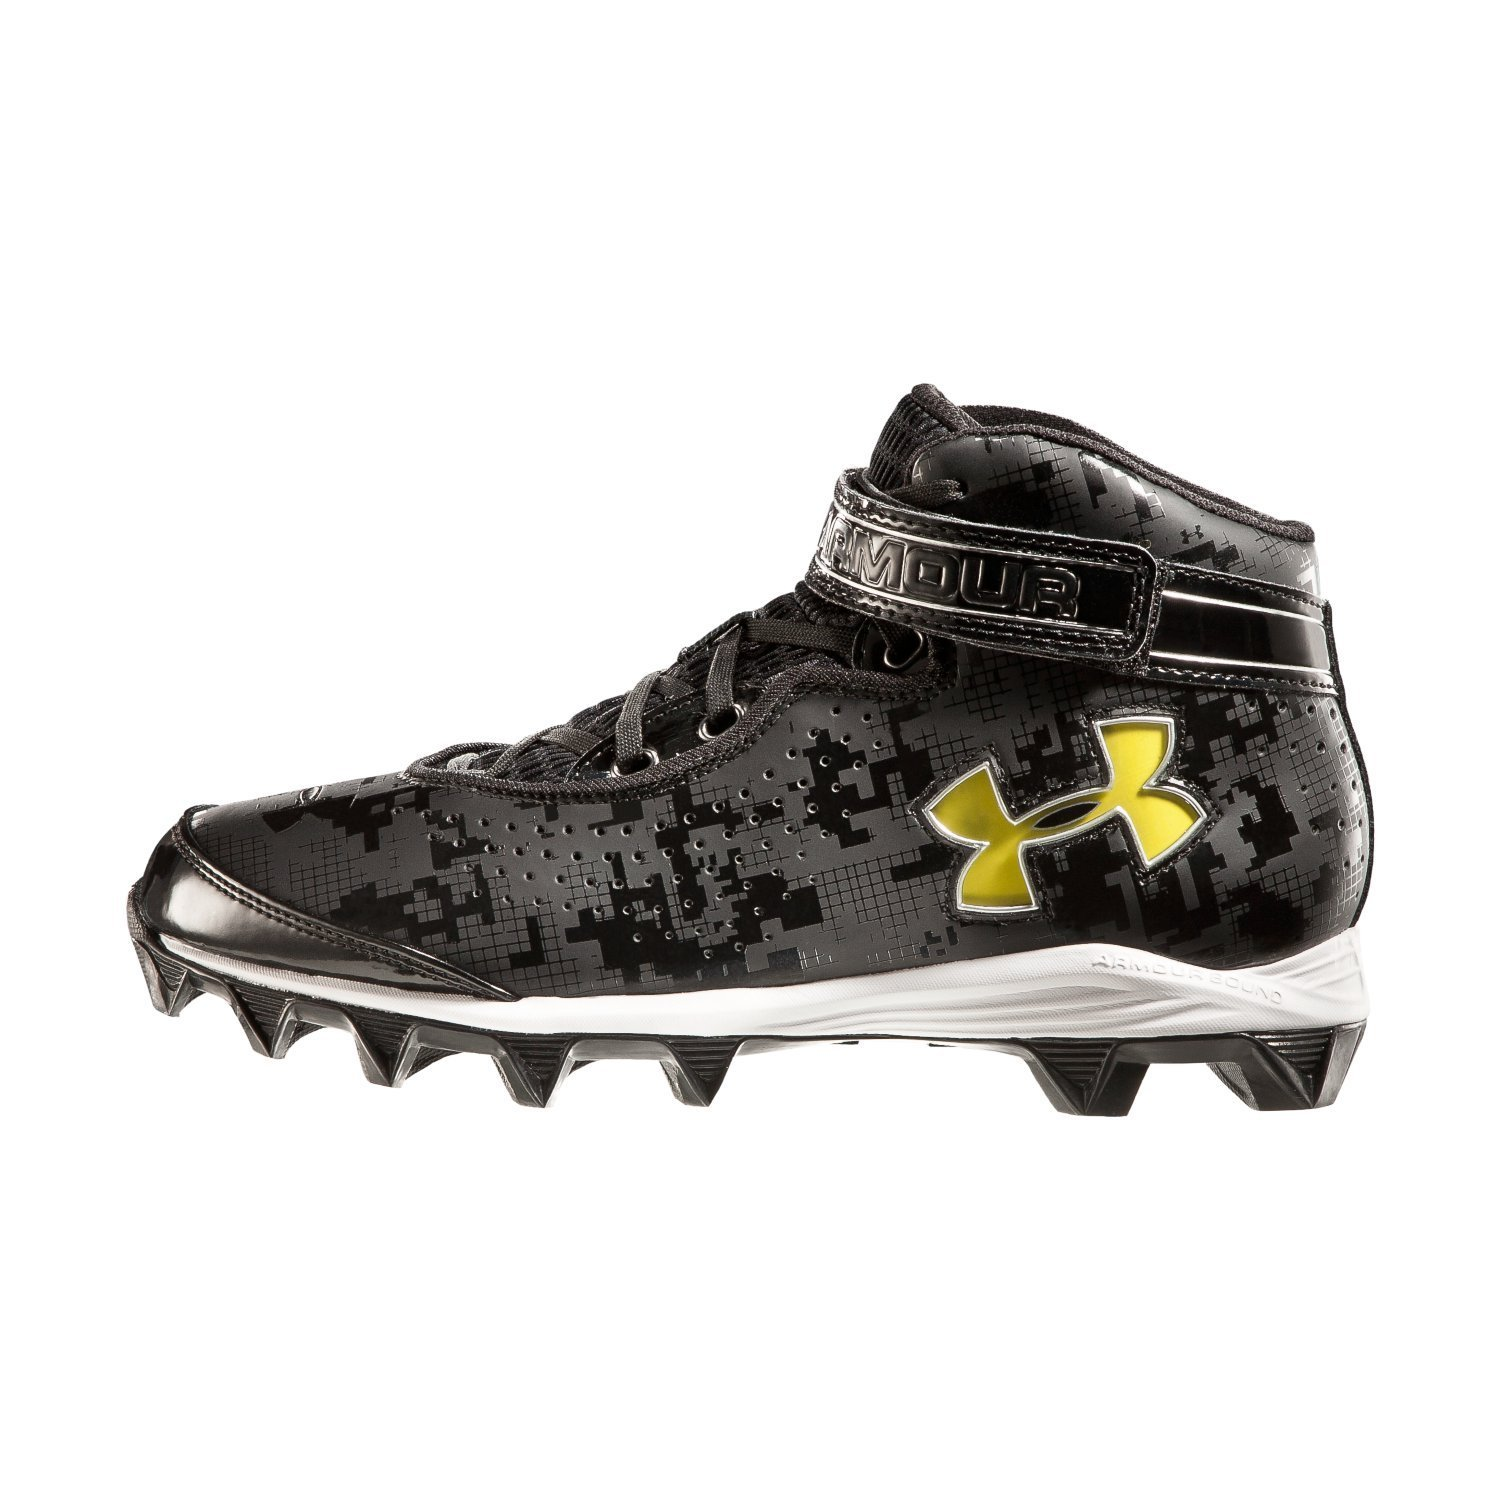 premium selection 23c9f d30d3 Get Quotations · Under Armour Men s Crusher Molded Football Cleats Black